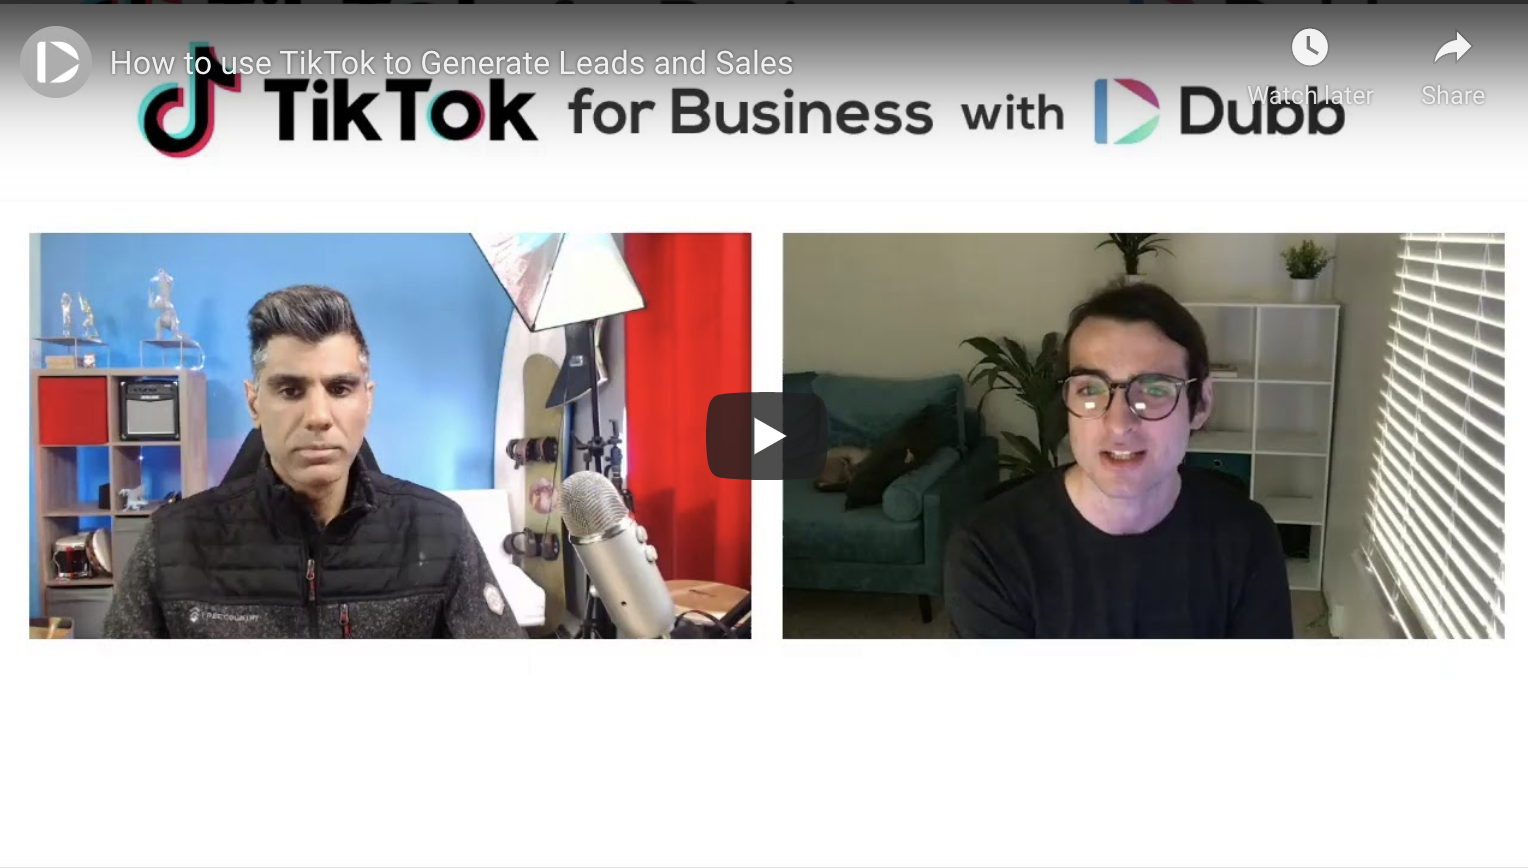 How to Use TikTok to Generate Leads and Sales